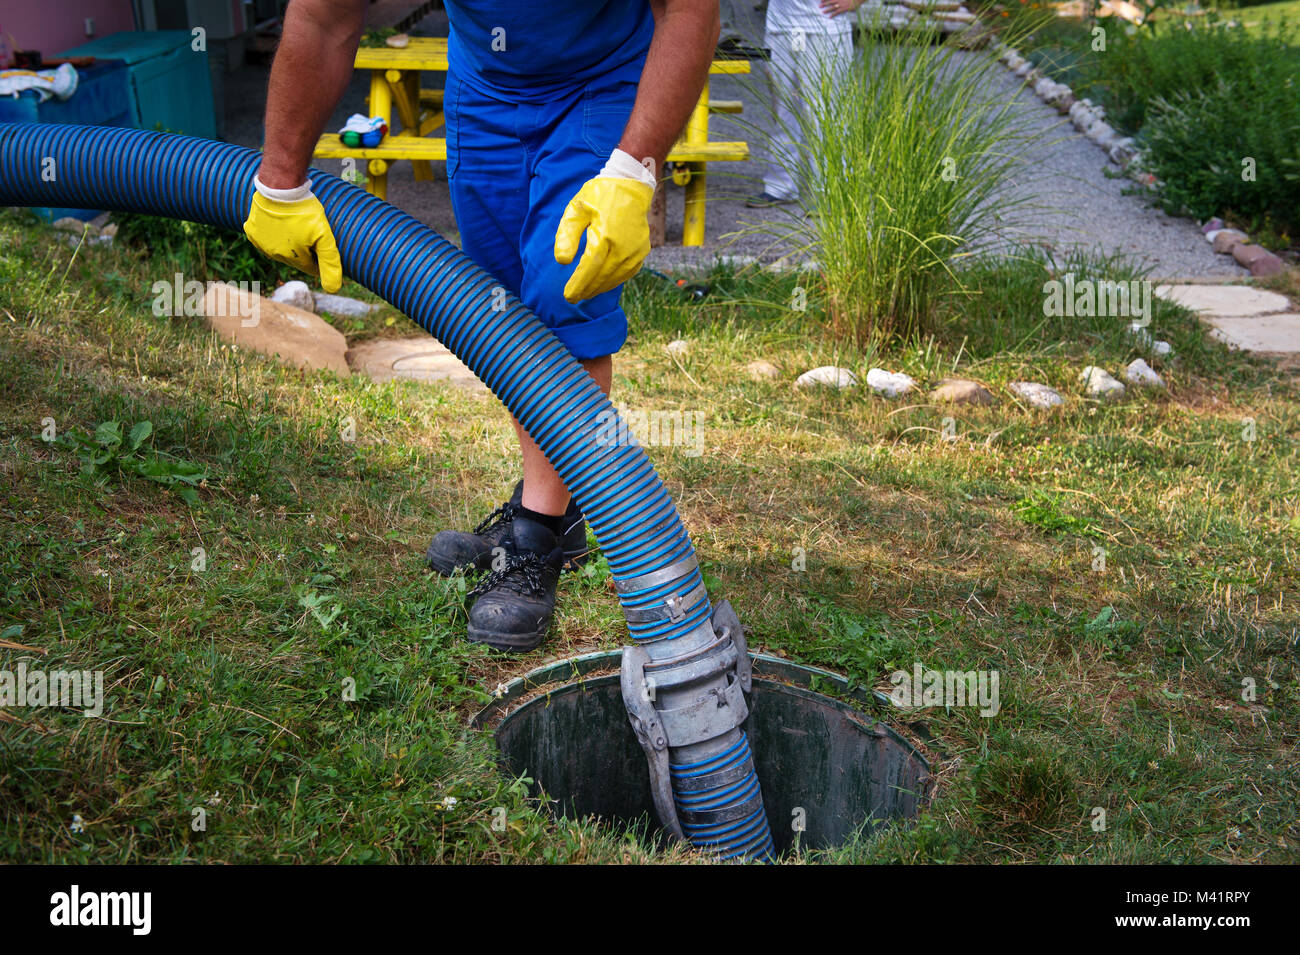 Emptying household septic tank  Cleaning sludge from septic